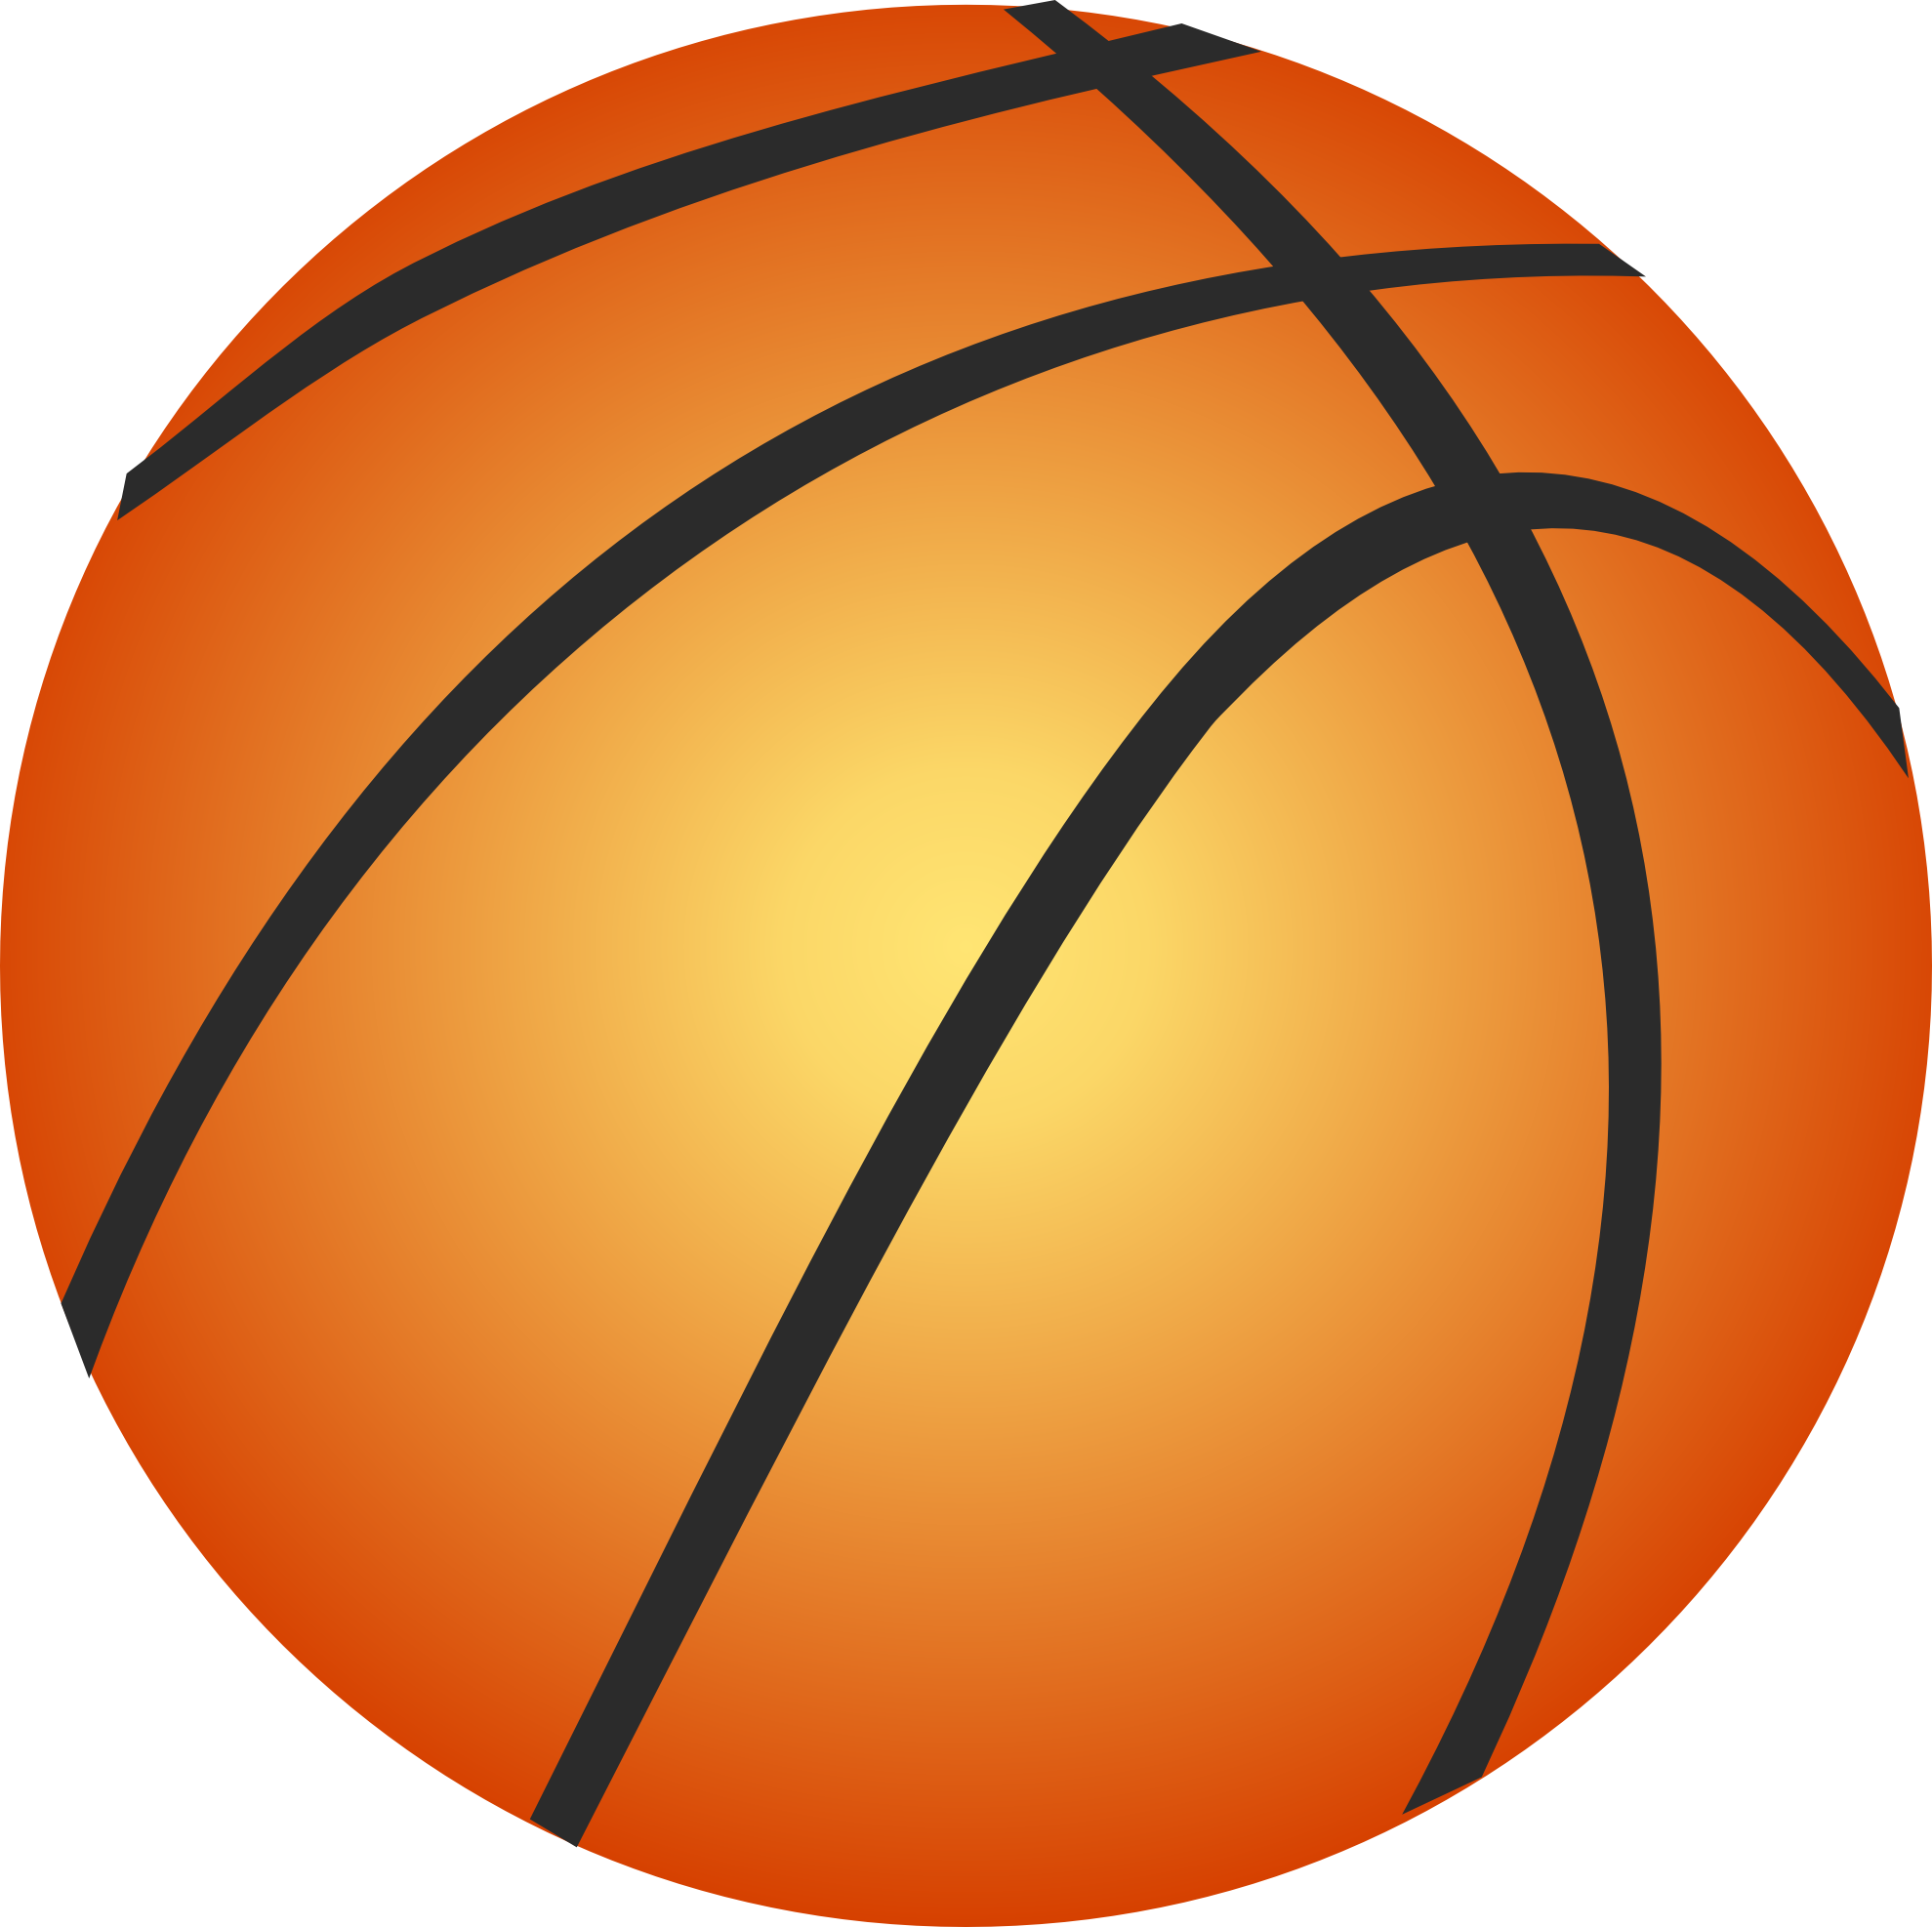 Youth basketball clipart svg transparent stock Free Pictures Of Basket Ball, Download Free Clip Art, Free Clip Art ... svg transparent stock